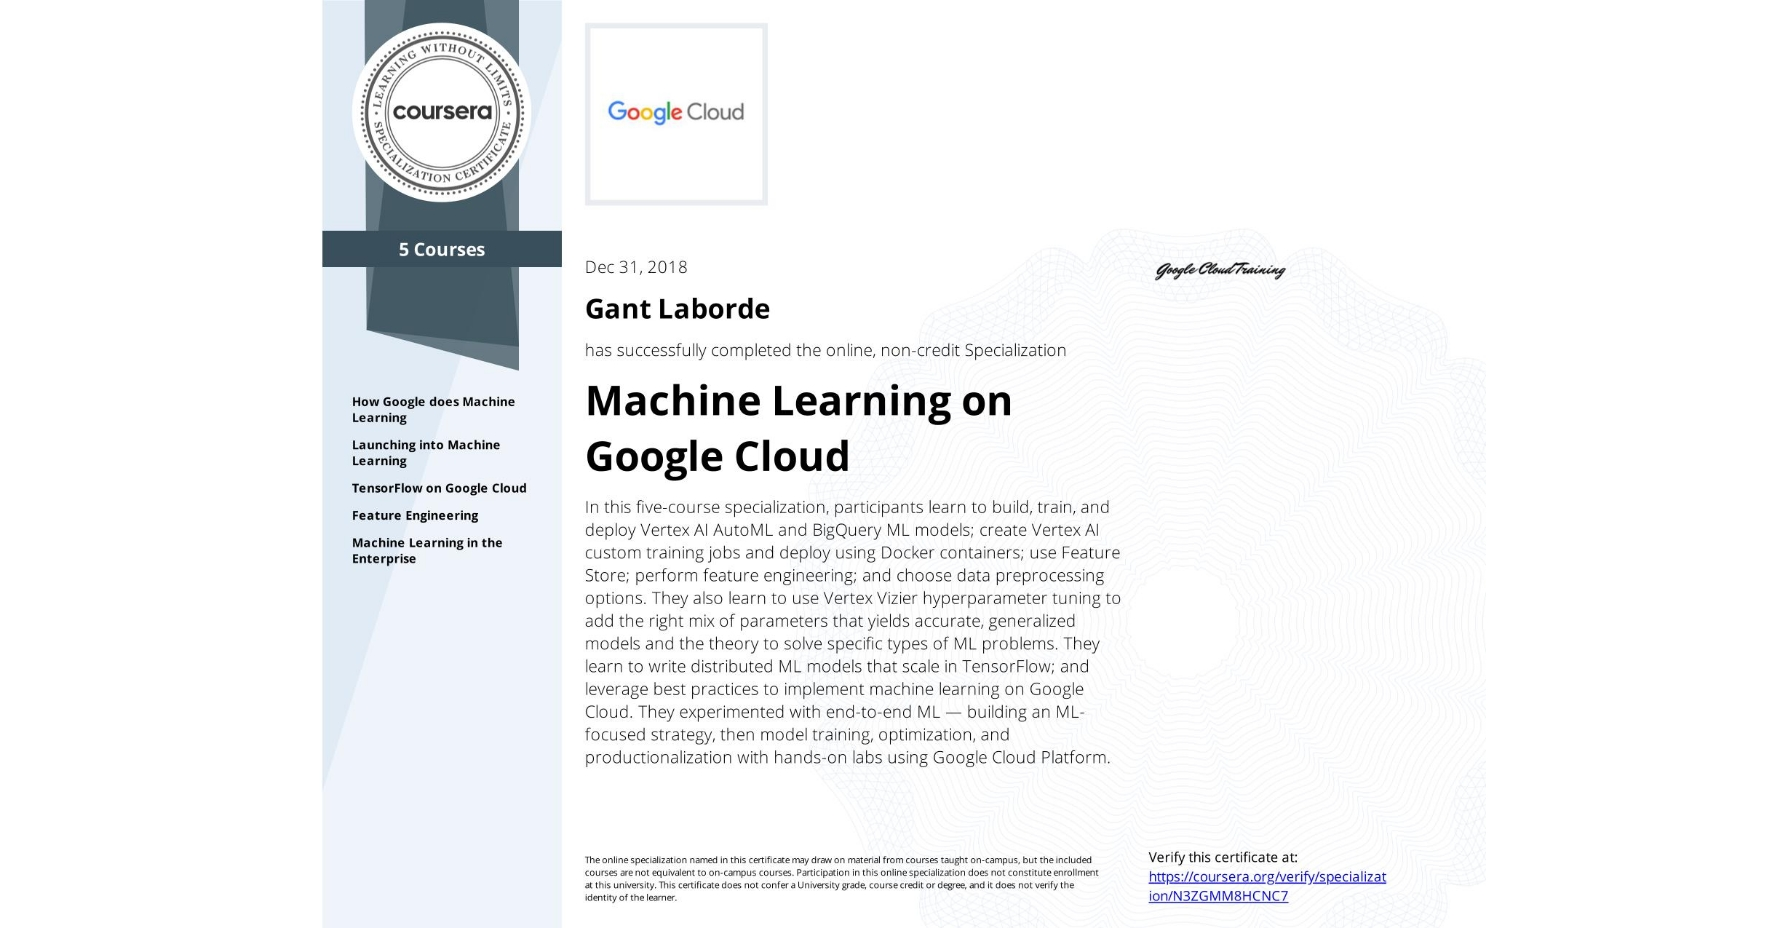 View certificate for Gant Laborde, Machine Learning with TensorFlow on Google Cloud Platform, offered through Coursera. This five-course online specialization teaches course participants how to write distributed machine learning models that scale in Tensorflow, scale out the training of those models. and offer high-performance predictions. Also featured is the conversion of raw data to features in a way that allows ML to learn important characteristics from the data and bring human insight to bear on the problem. It also teaches how to incorporate the right mix of parameters that yields accurate, generalized models and knowledge of the theory to solve specific types of ML problems. Course participants experimented with end-to-end ML, starting from building an ML-focused strategy and progressing into model training, optimization, and productionalization with hands-on labs using Google Cloud Platform.